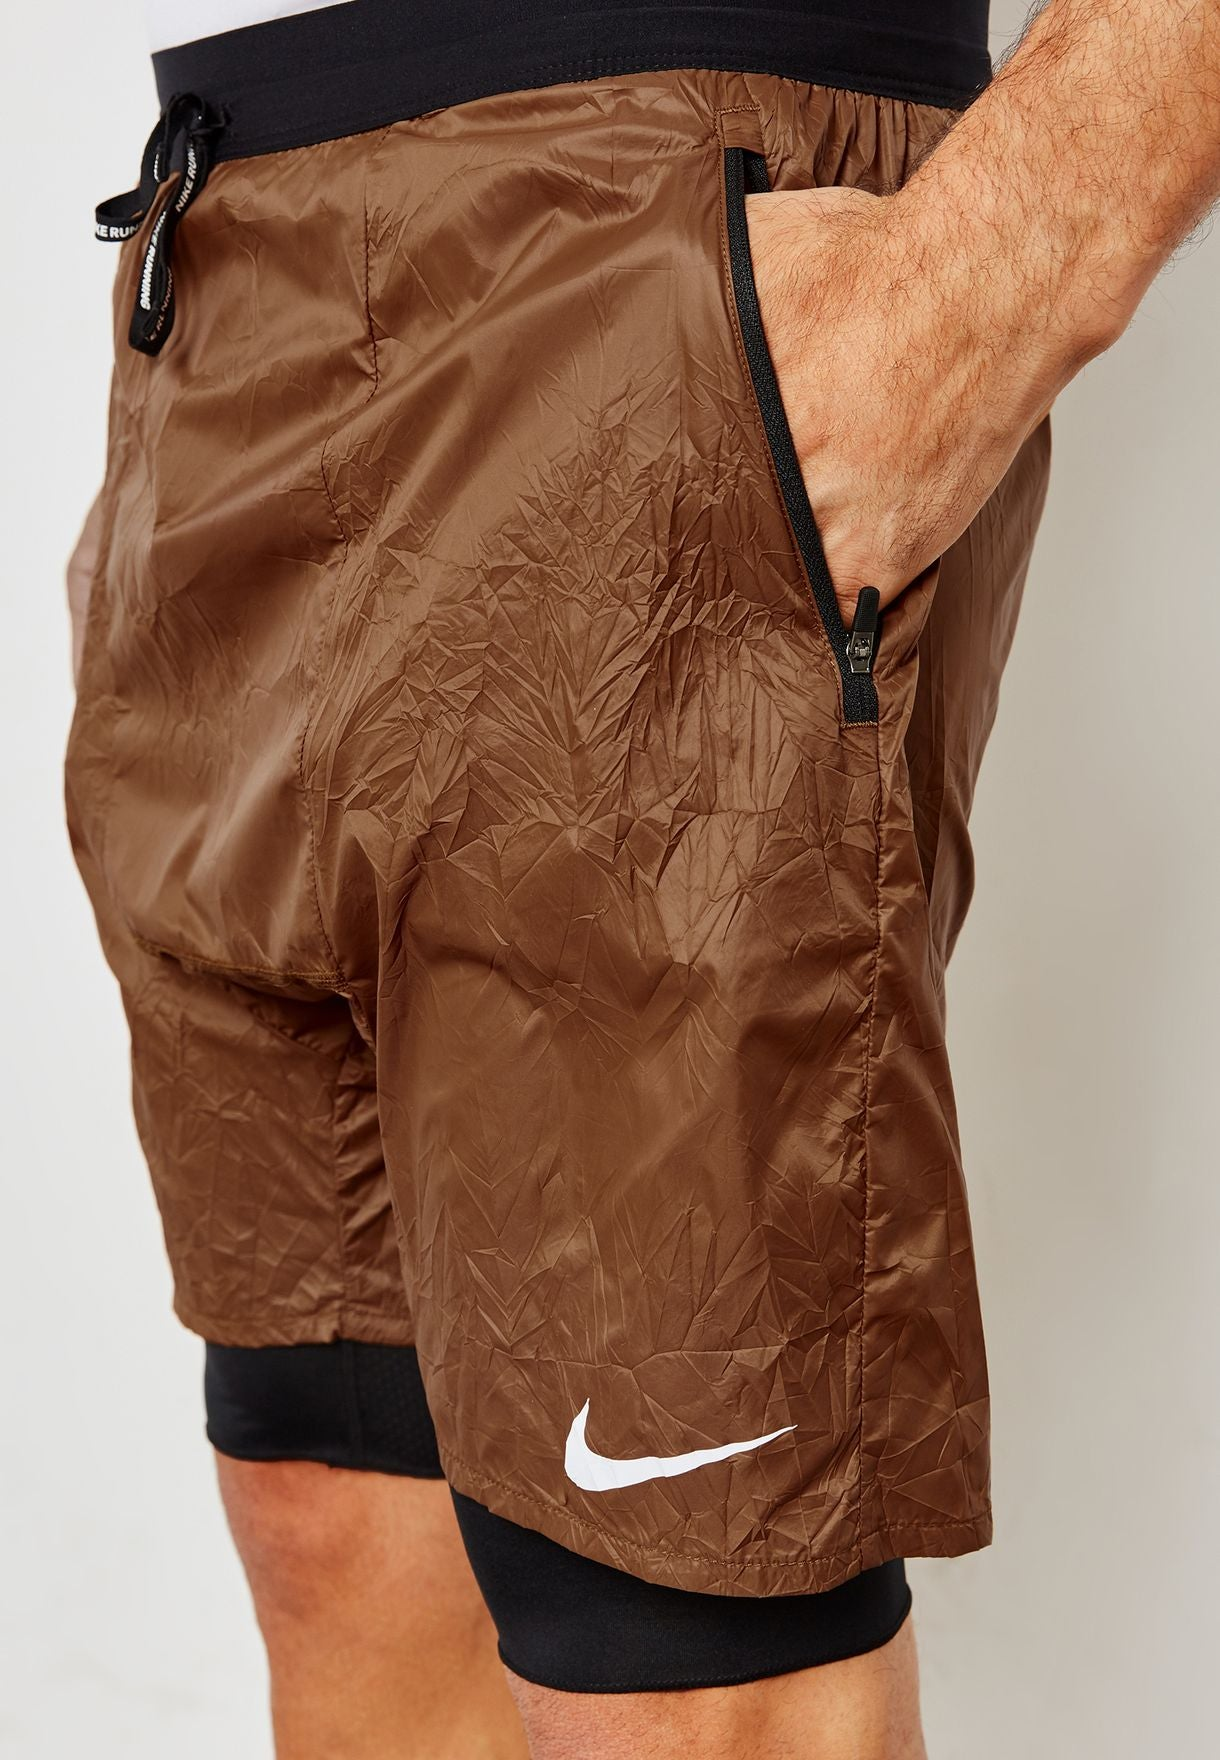 Men's Nike Running Division Stride Elevate 2 in 1 Distance Shorts.   928457-281